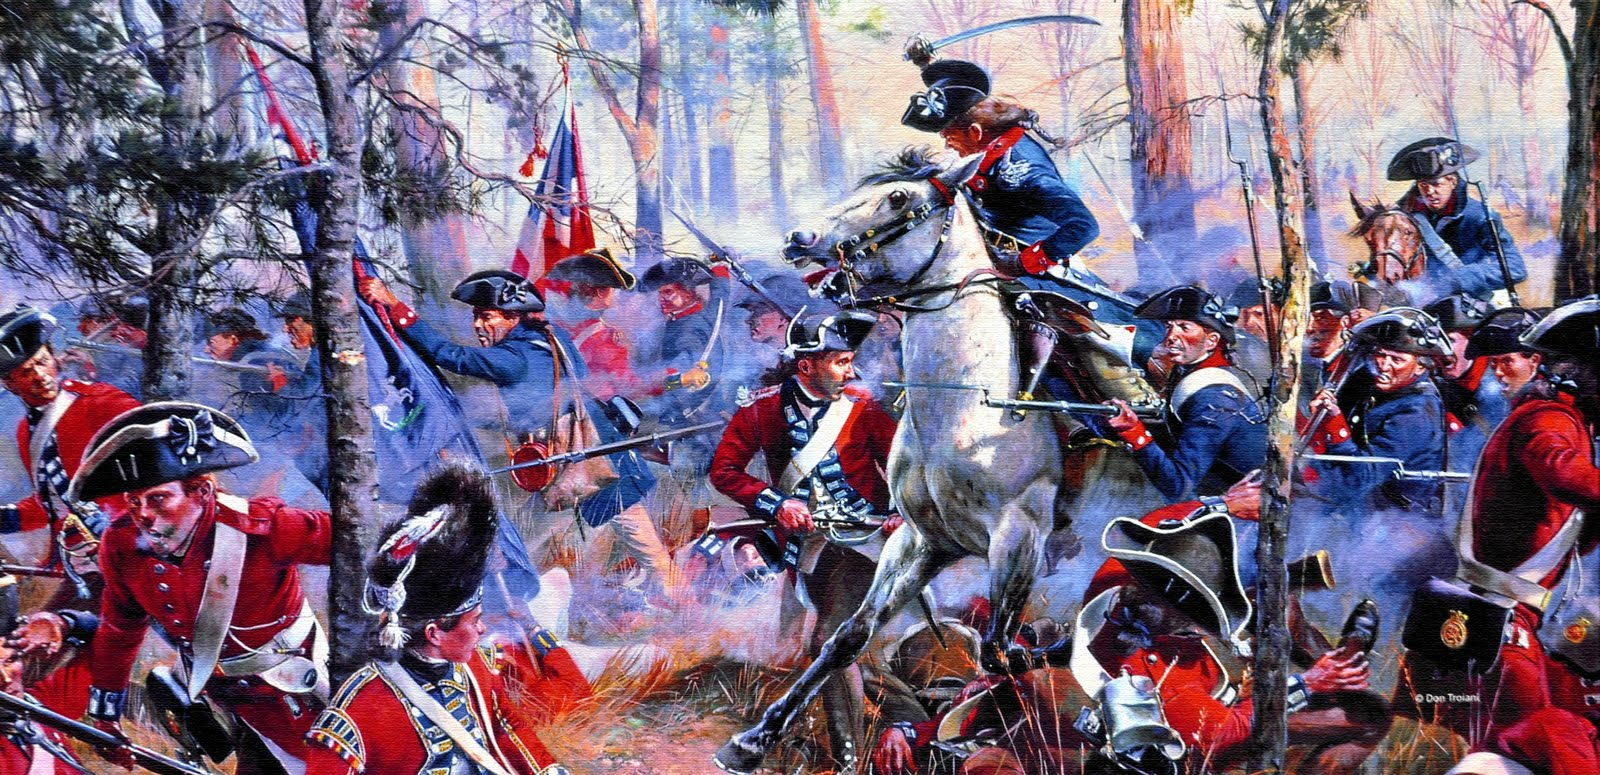 an overview of the american fight for the independence from england The colonists in the declaration of independence clearly stated their grievances and case against england, declaring to the world the reasons that caused them to separate and fight to become the united states of america.